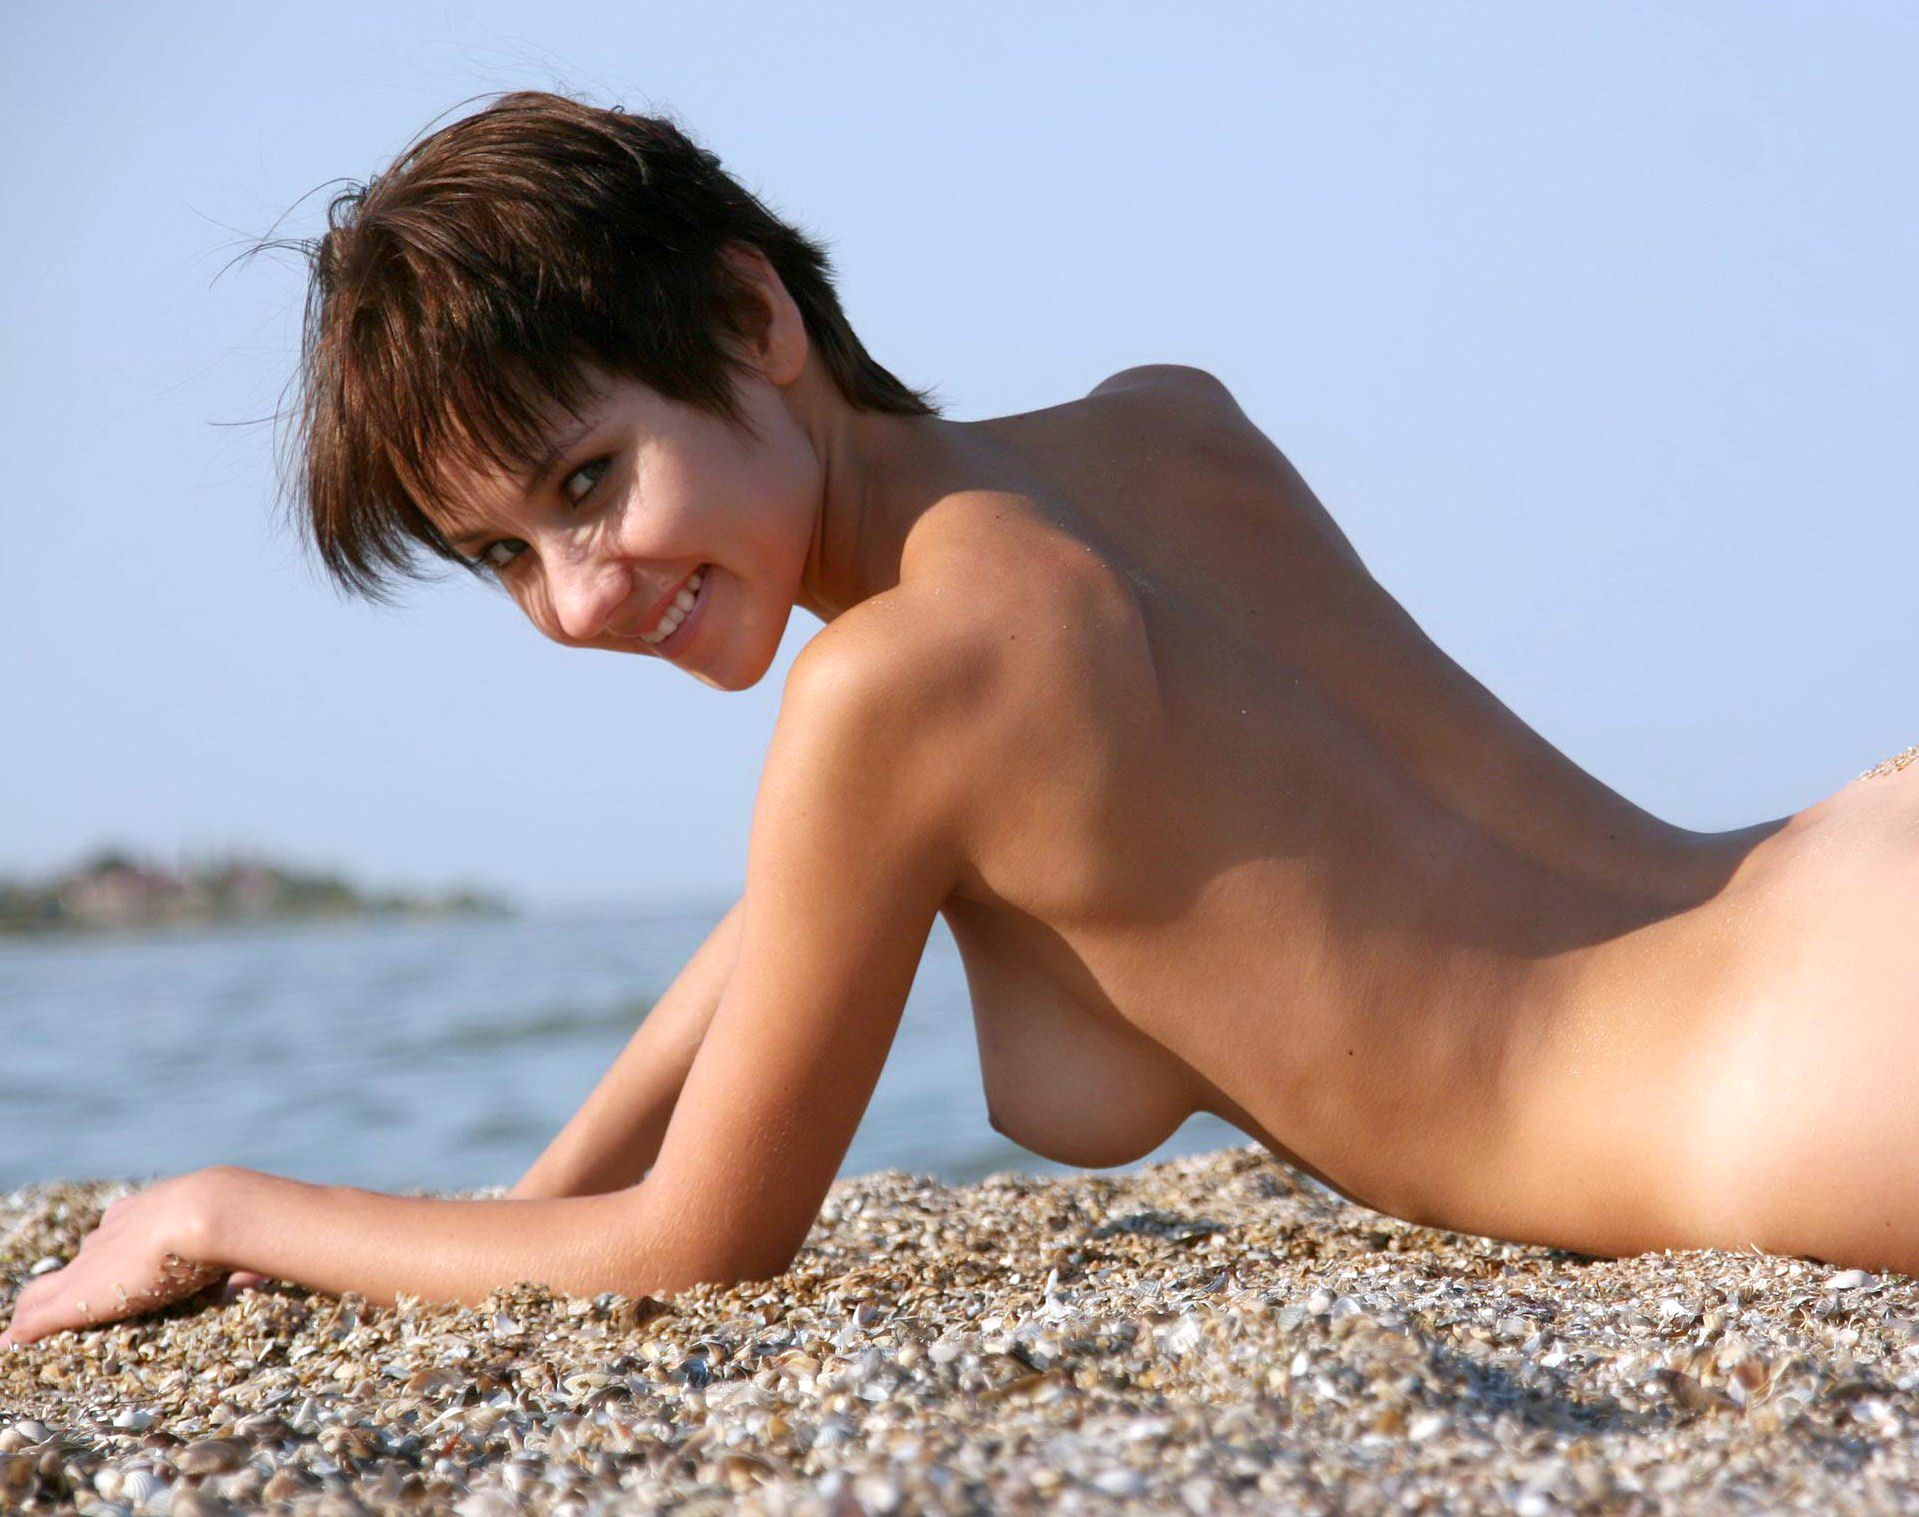 Pixie haired cutie posing topless on the beach